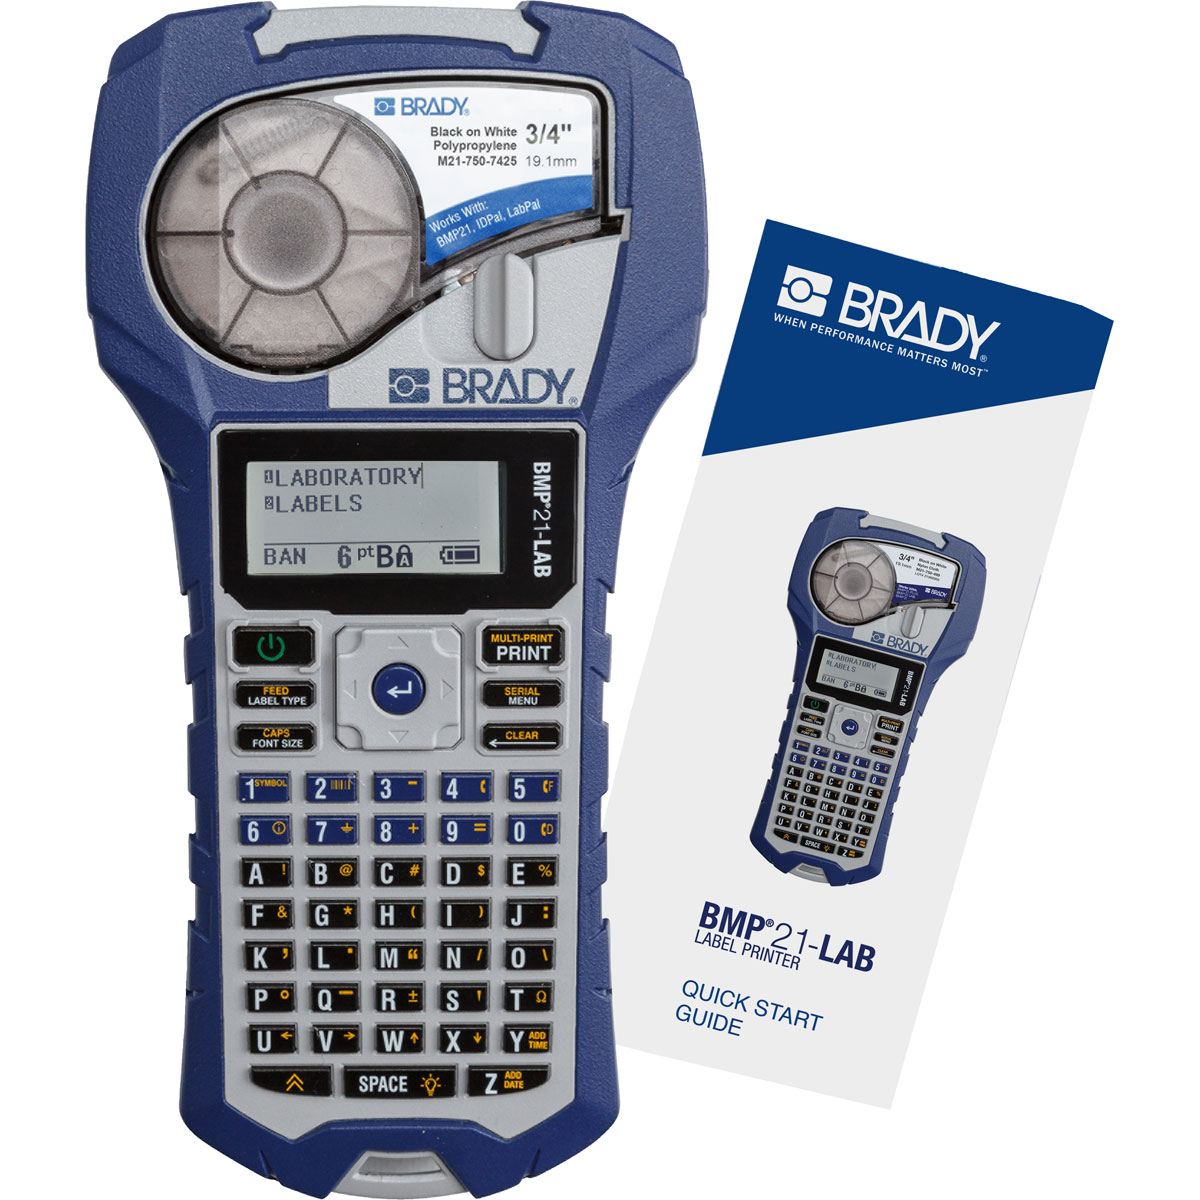 Brady® BMP21-LAB BMP®21 Barcode Capable Single Color Laboratory Label Printer, Thermal Transfer Print, 6 to 40 Point Font, M-AC-110937 AC Power/(6) BMP21-PLUS-BAT AA Rechargeable Lithium-Ion Battery, LCD Display